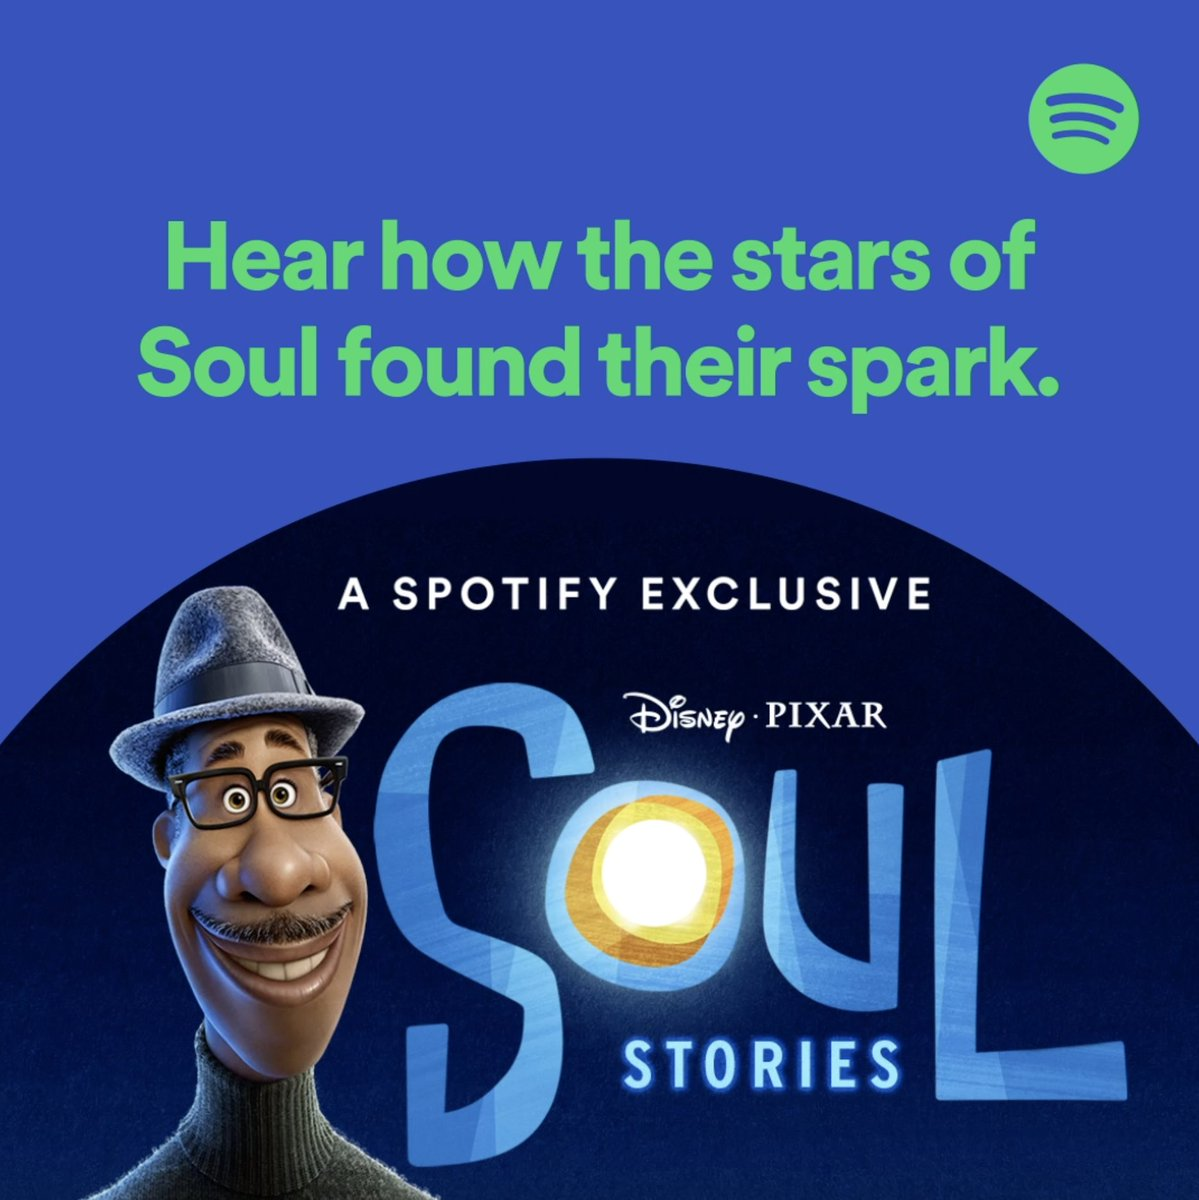 How did the stars of Soul find their ✨spark✨? Listen to the #SoulStories podcast now on @Spotify—and don't forget to stream #PixarSoul, only on #DisneyPlus.